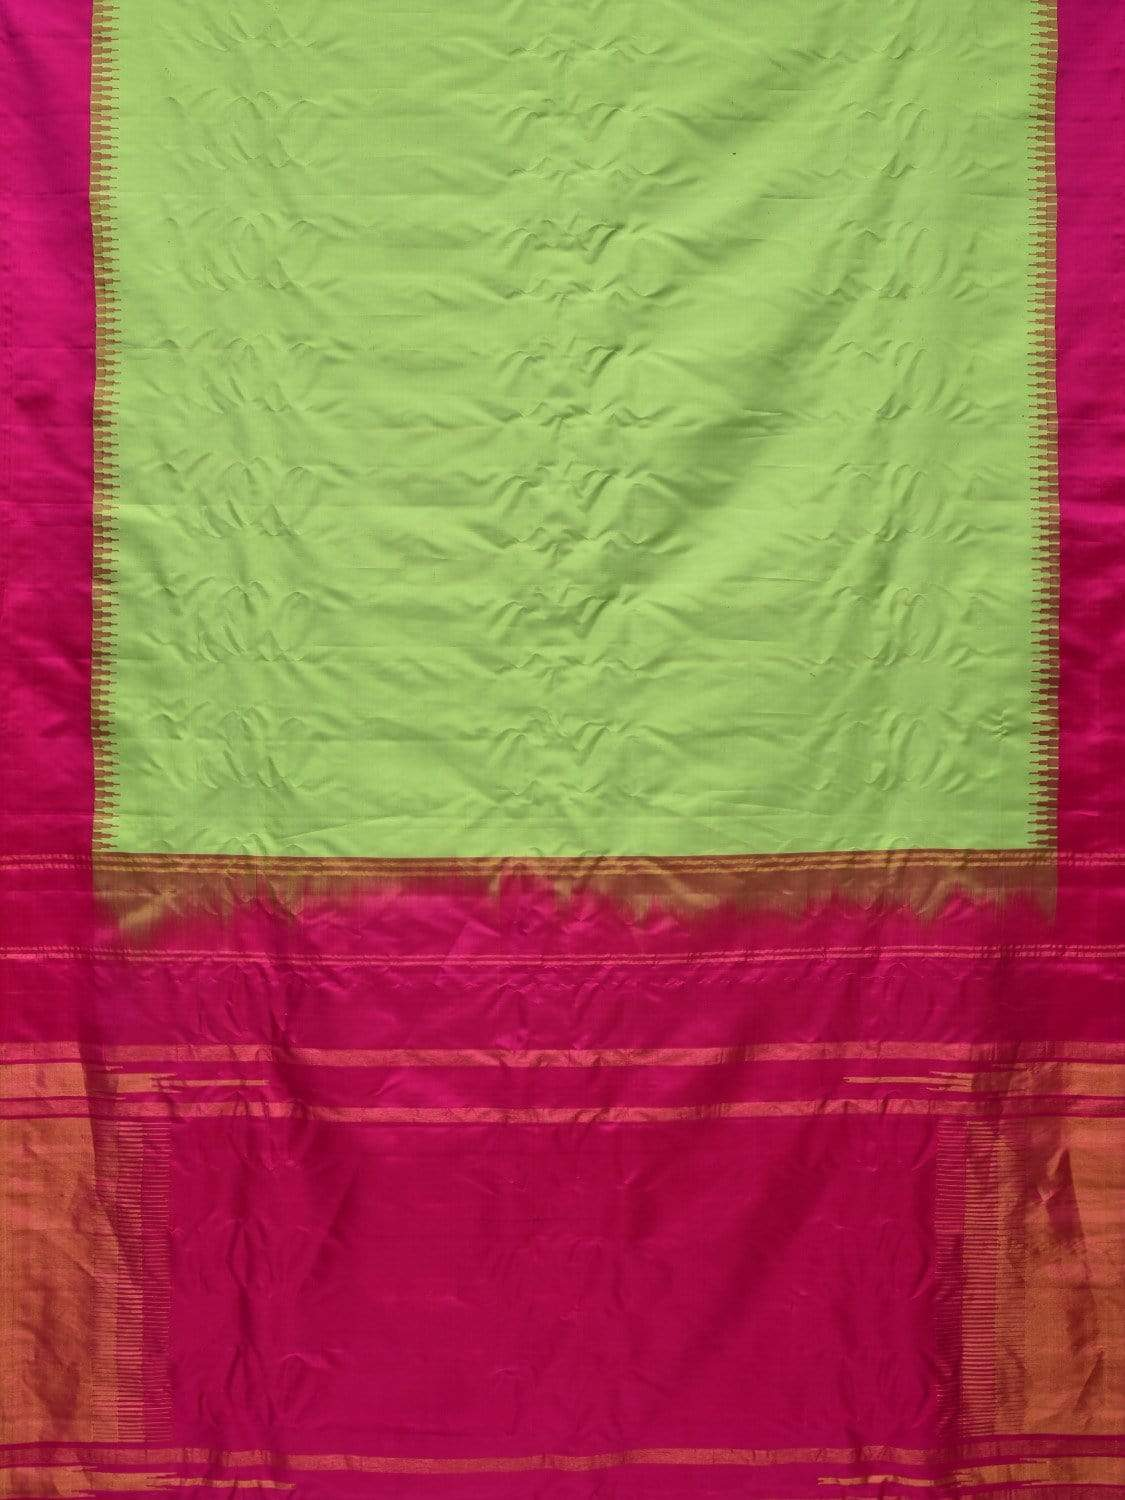 Light Green and Pink Gadwal Silk Handloom Plain Saree with Temple Border Design g0251